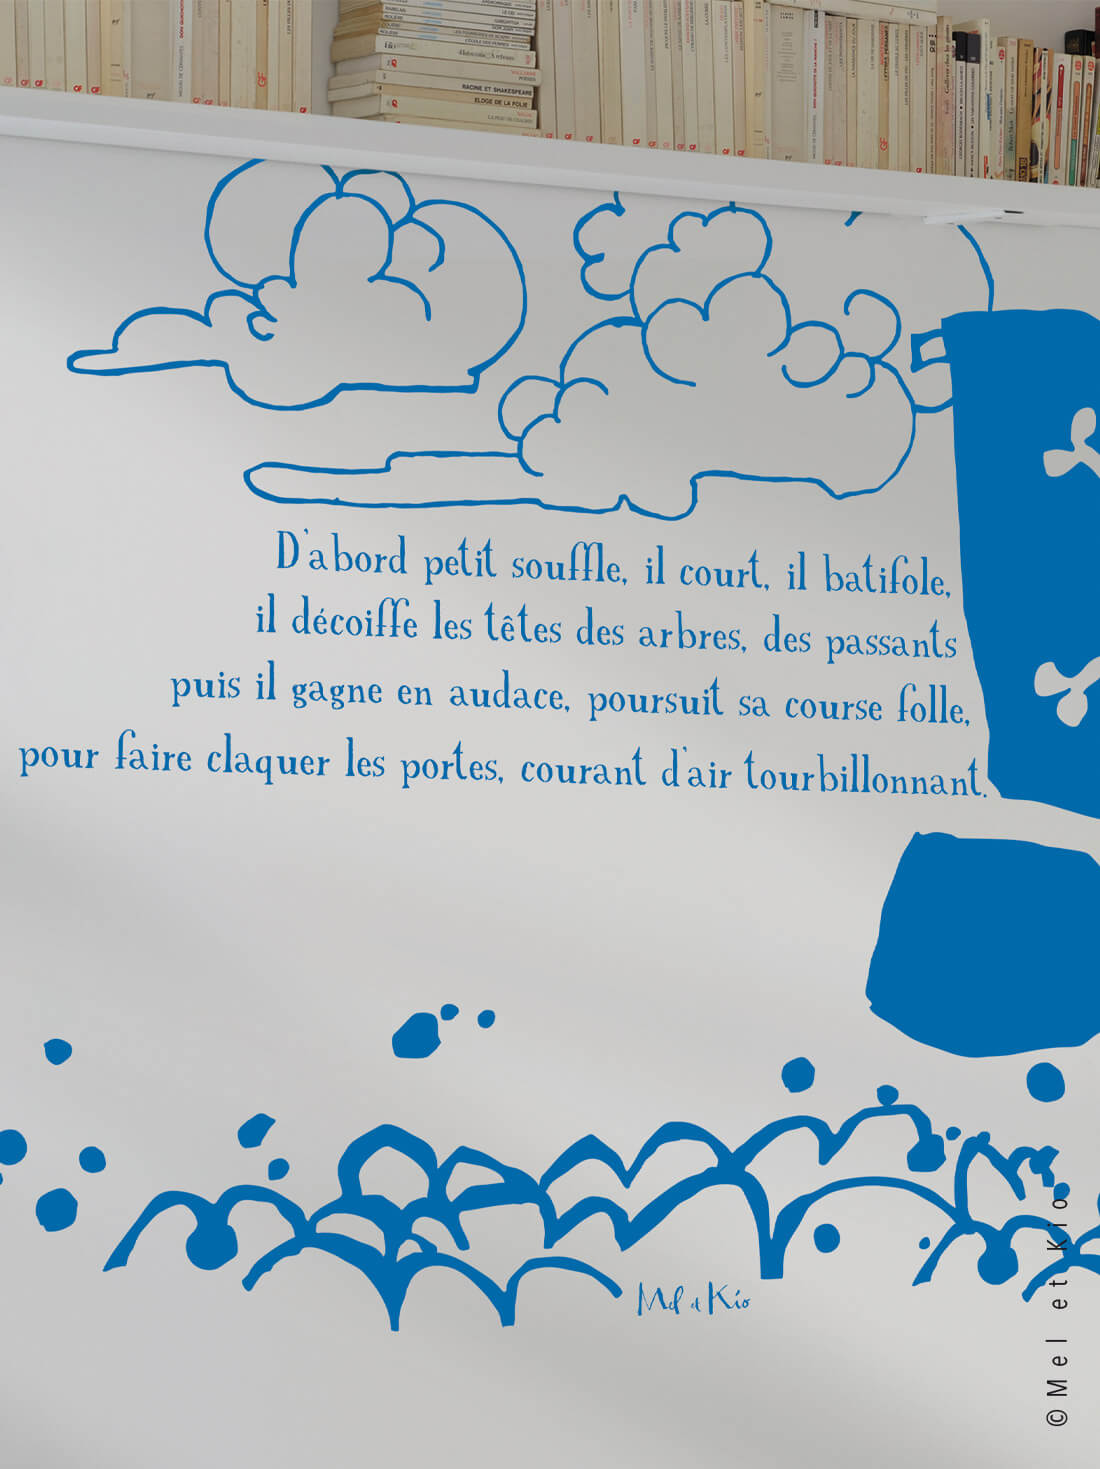 stickers bateau pirate texte poétique original detail by Poetic Wall